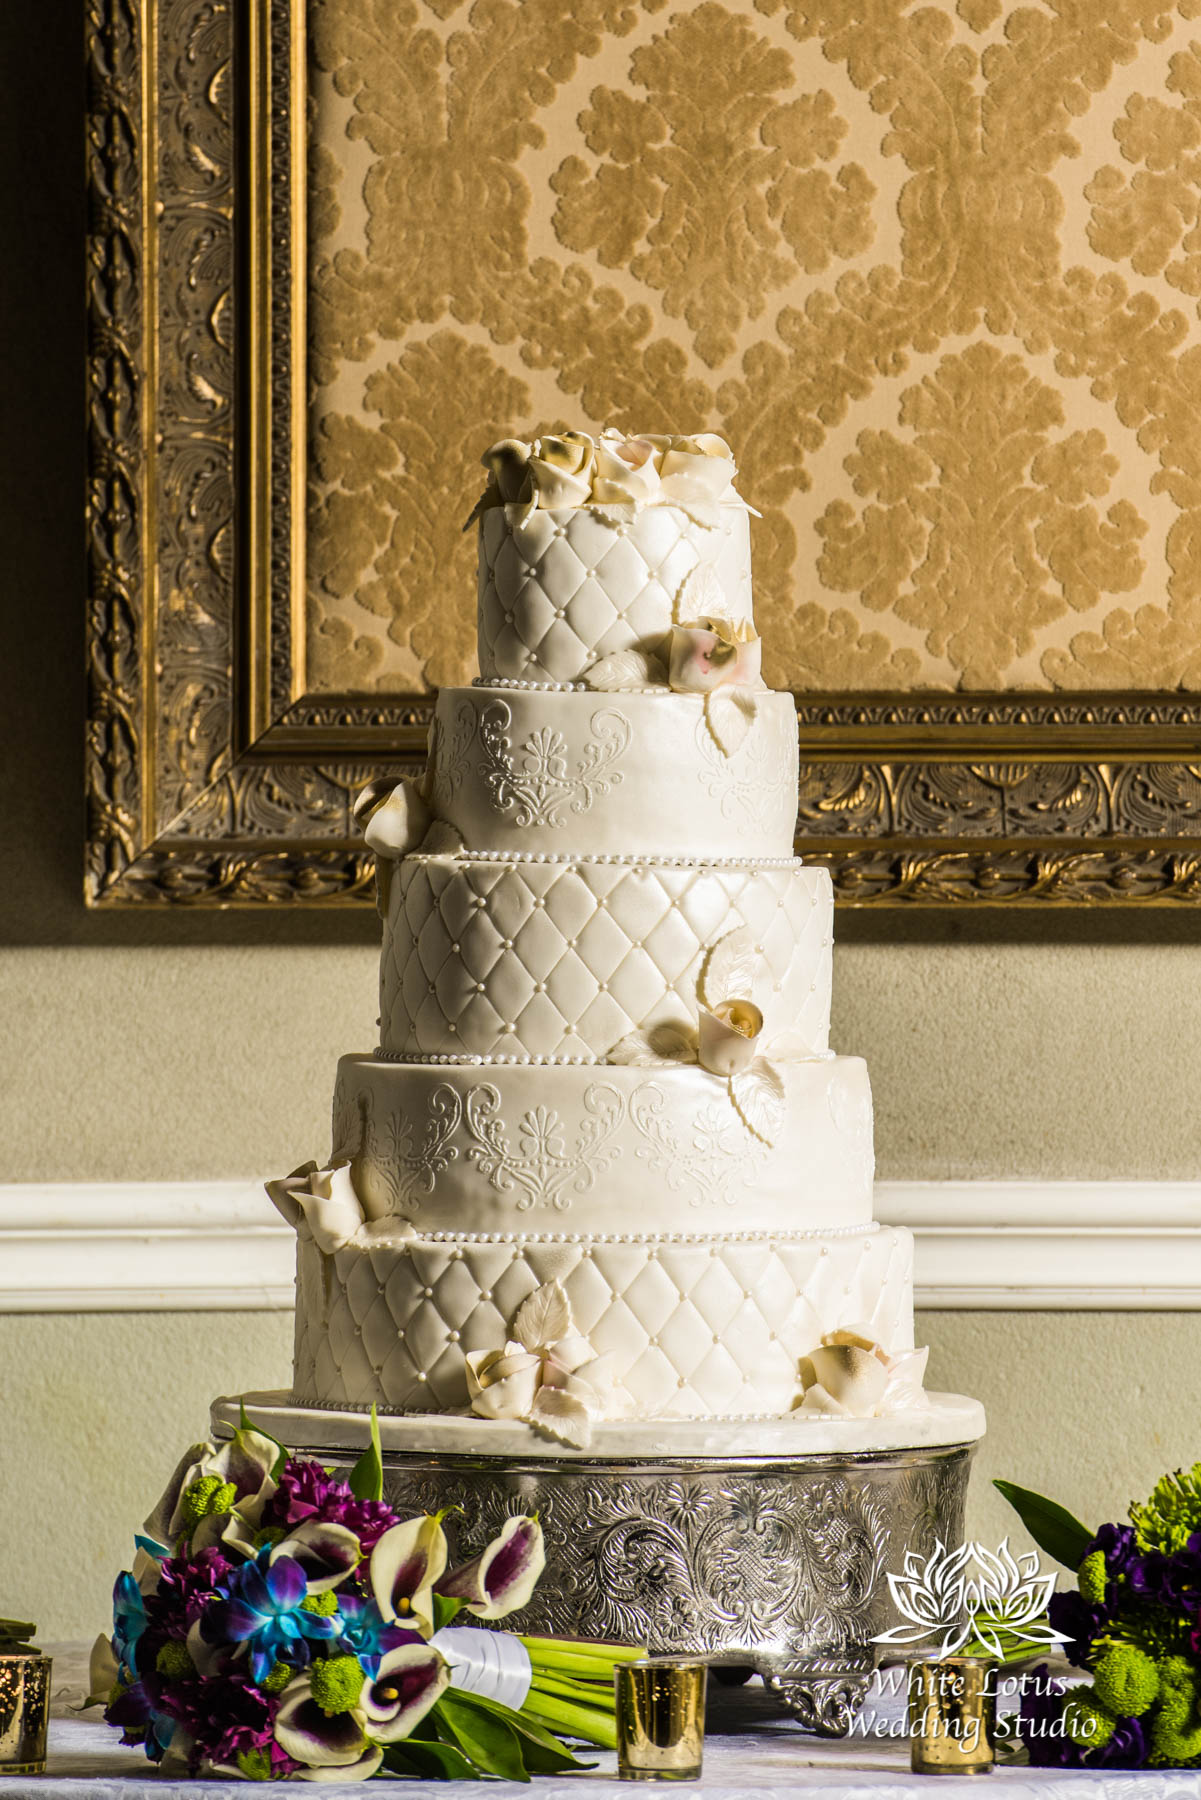 264 - Toronto - Liberty Grand - Wedding Cake - PW